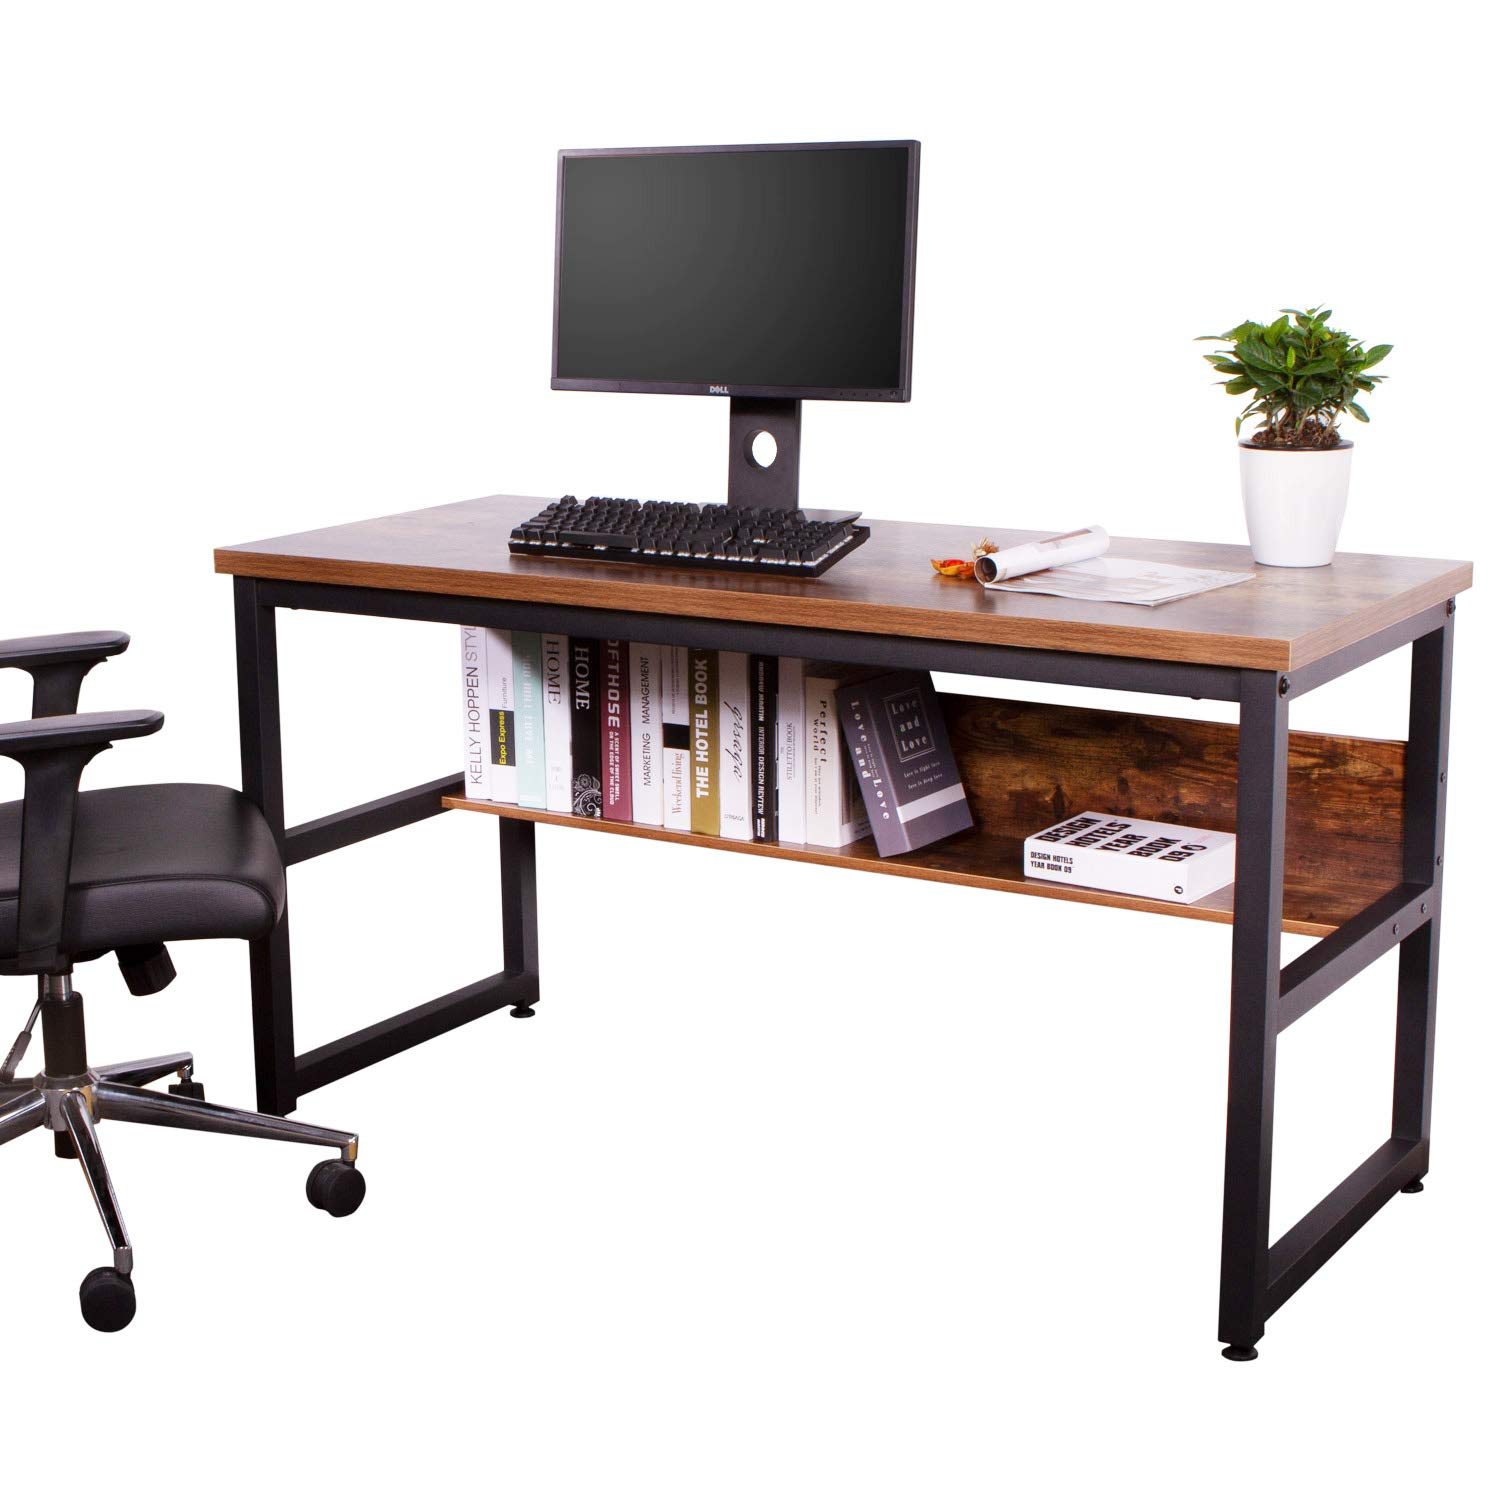 IRONCK Computer Desk 55'' with Bookshelf, Office Desk, Writing Desk, Wood and Metal Frame, Industrial Style, Study Table Workstation for Home Office Furniture by IRONCK (Image #6)